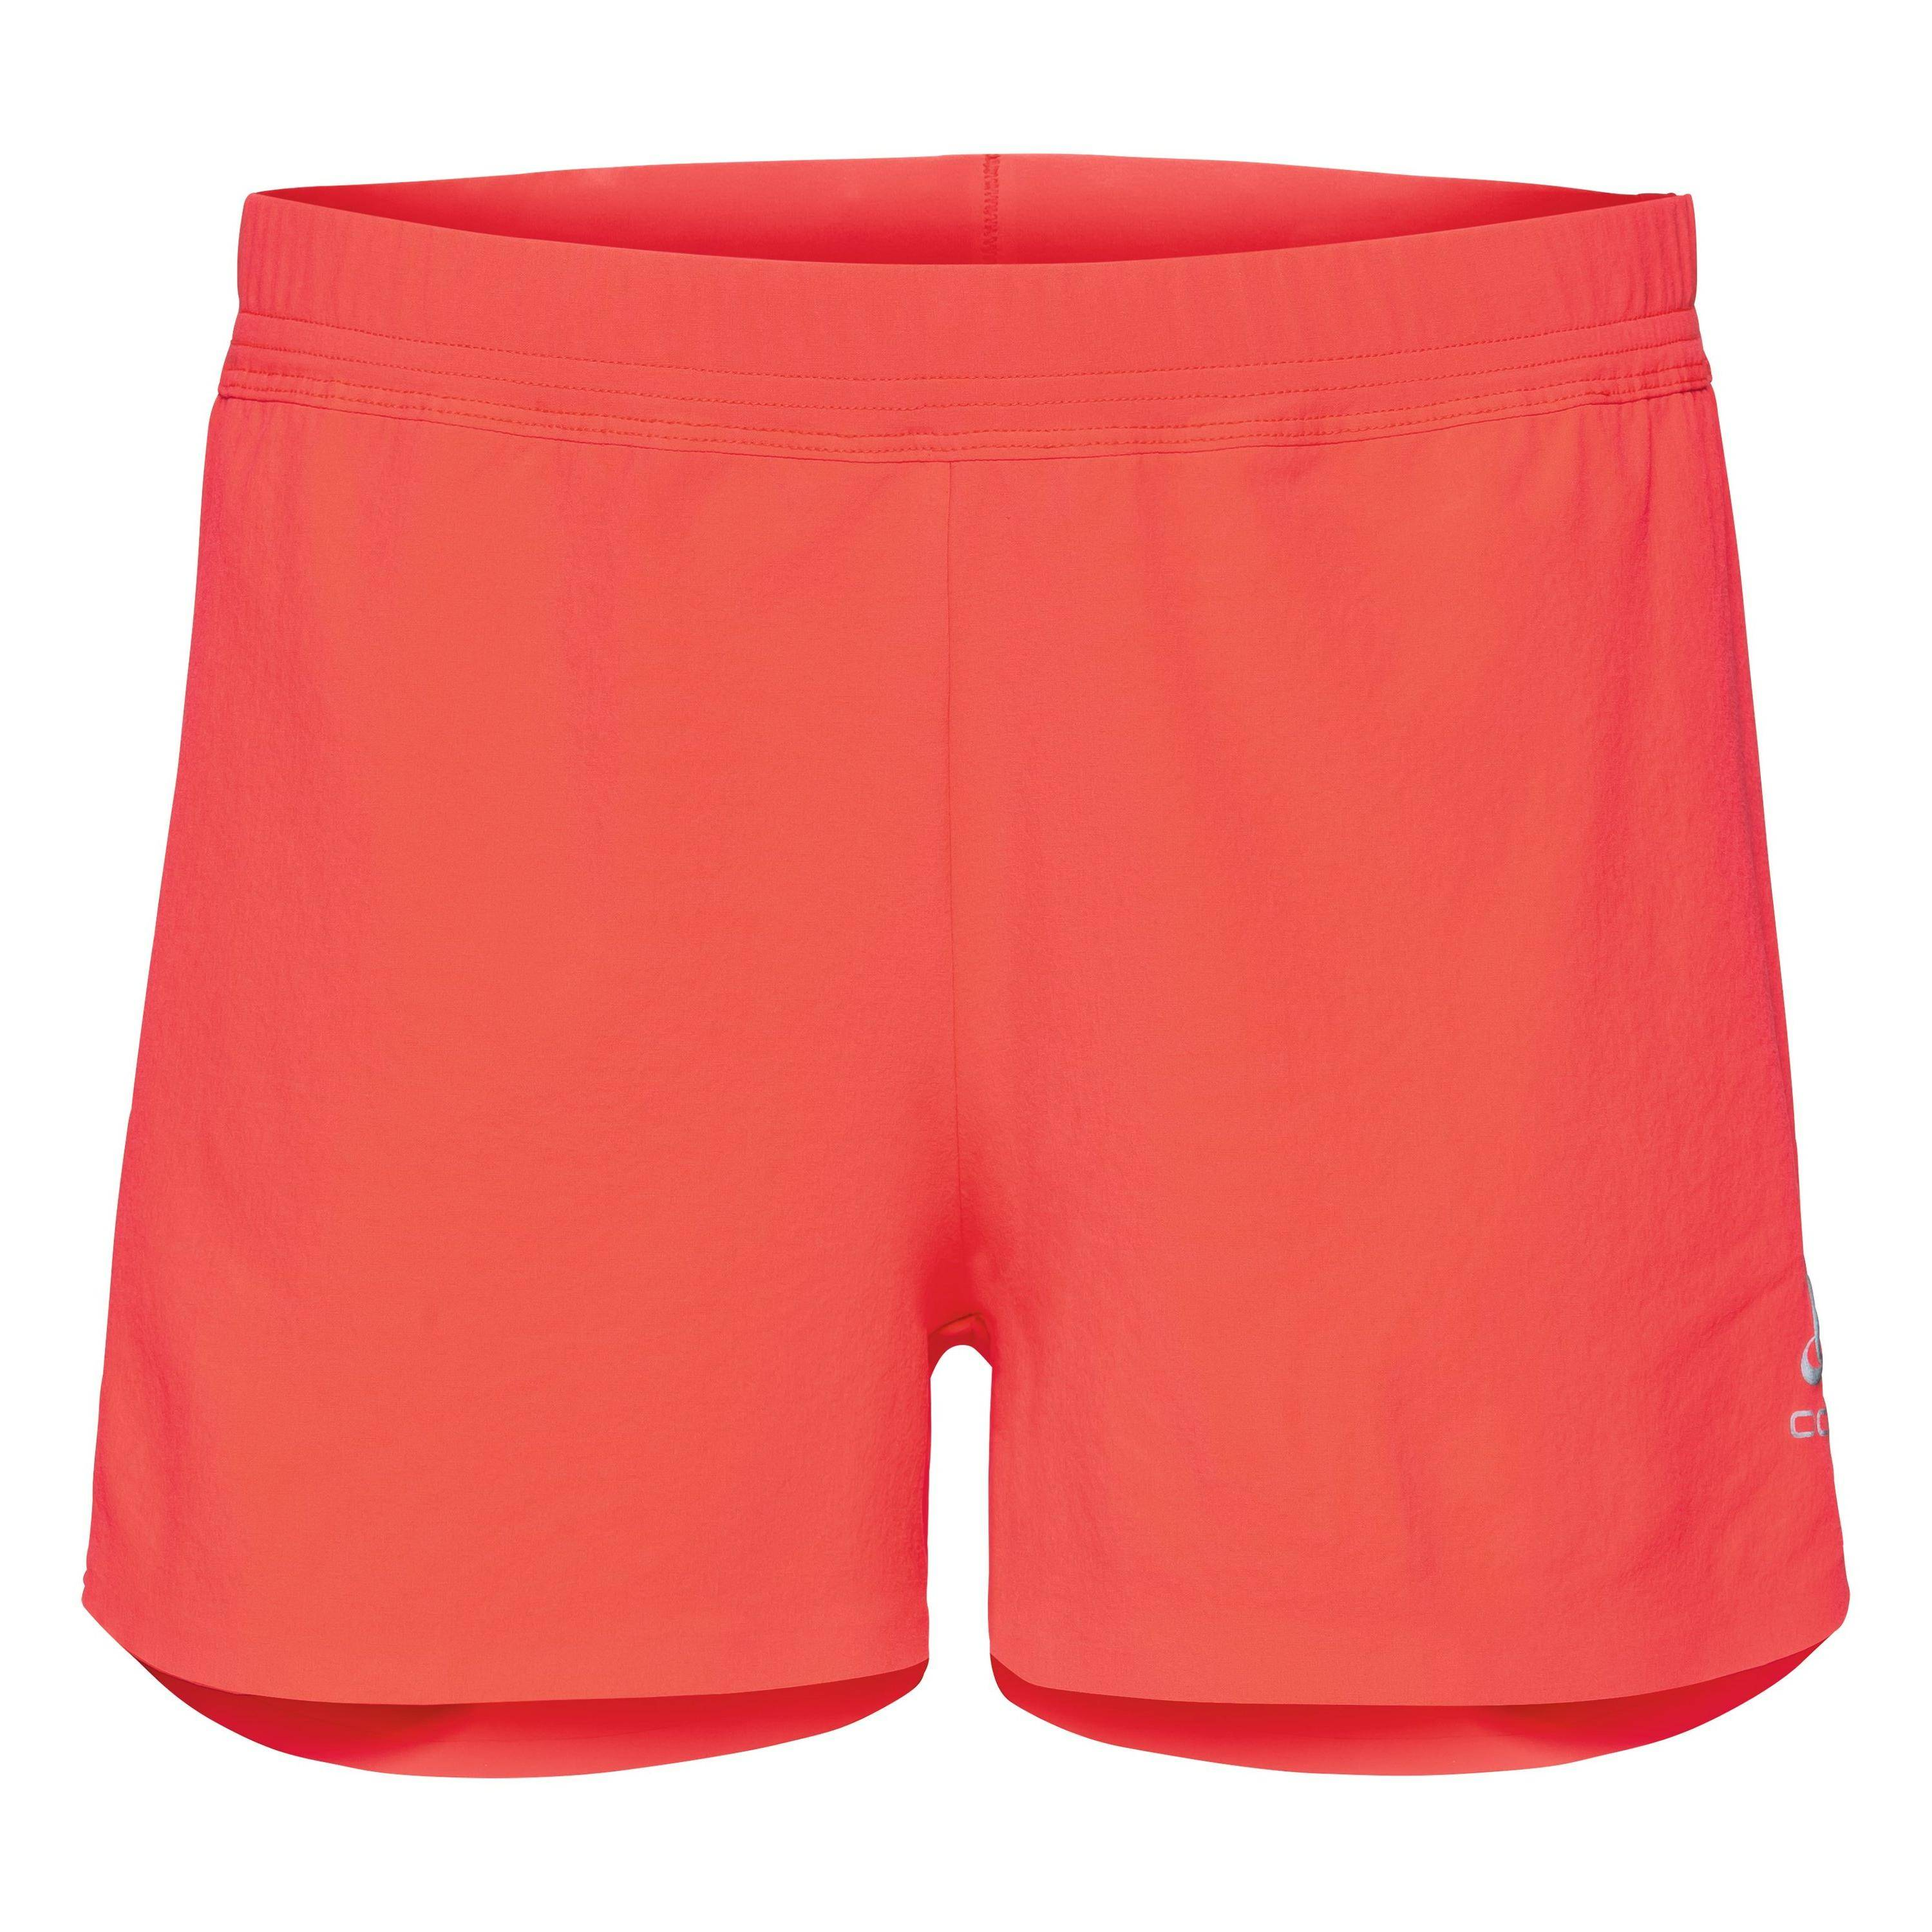 Odlo Short ZEROWEIGHT X-LIGHT fiery coral taille: S